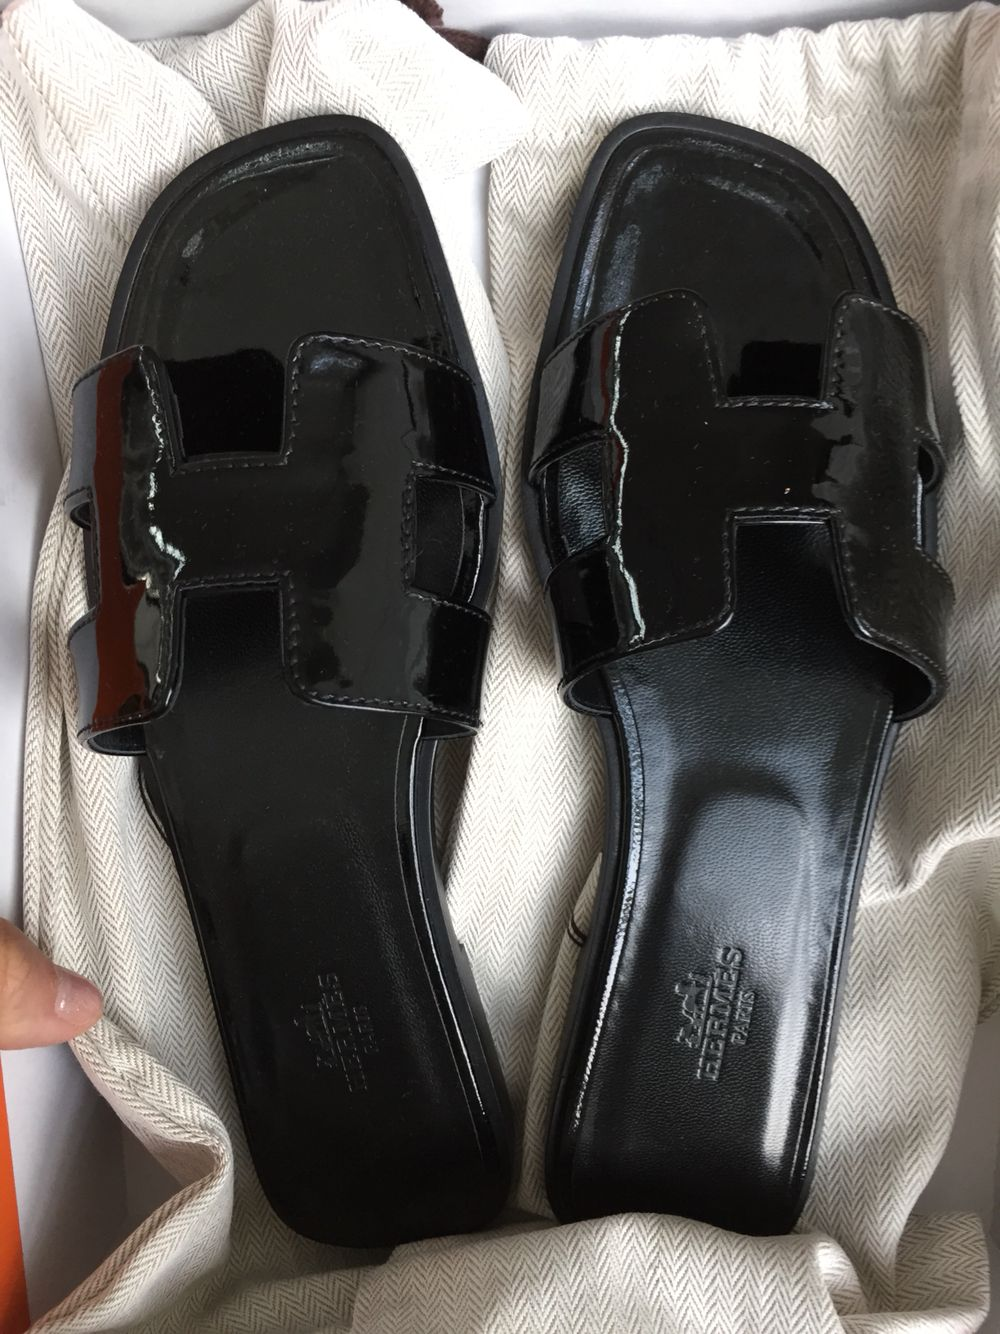 763714ad46eb Brand new hermes oran in shiny black size 37.5 selling at only  700 ...